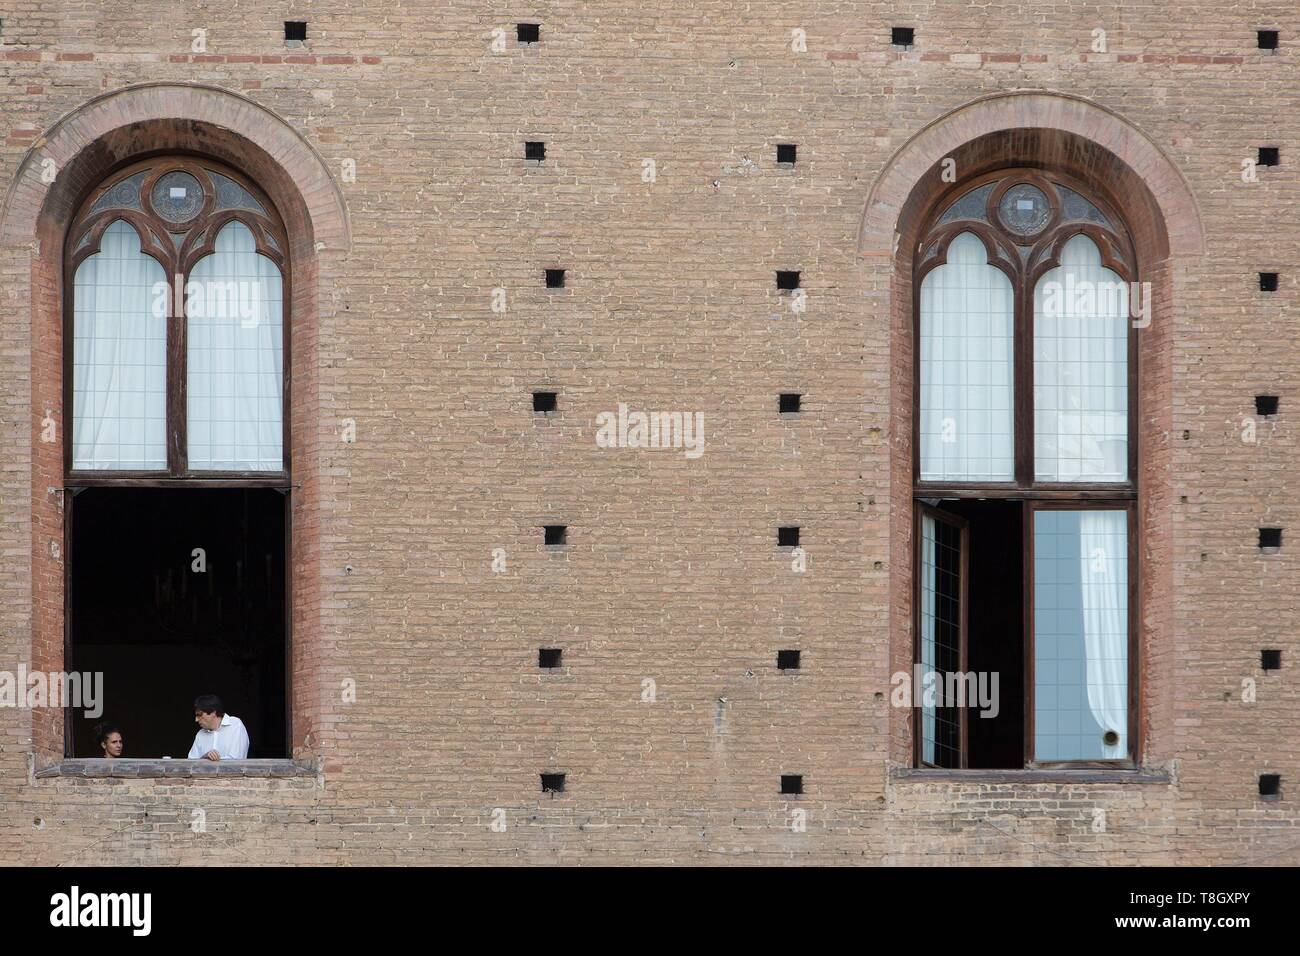 Italy, Tuscany, Sienna, historical center listed as World Heritage by UNESCO, people by a window of the Palazzo Pubblico on Piazza Mercato (market square) - Stock Image